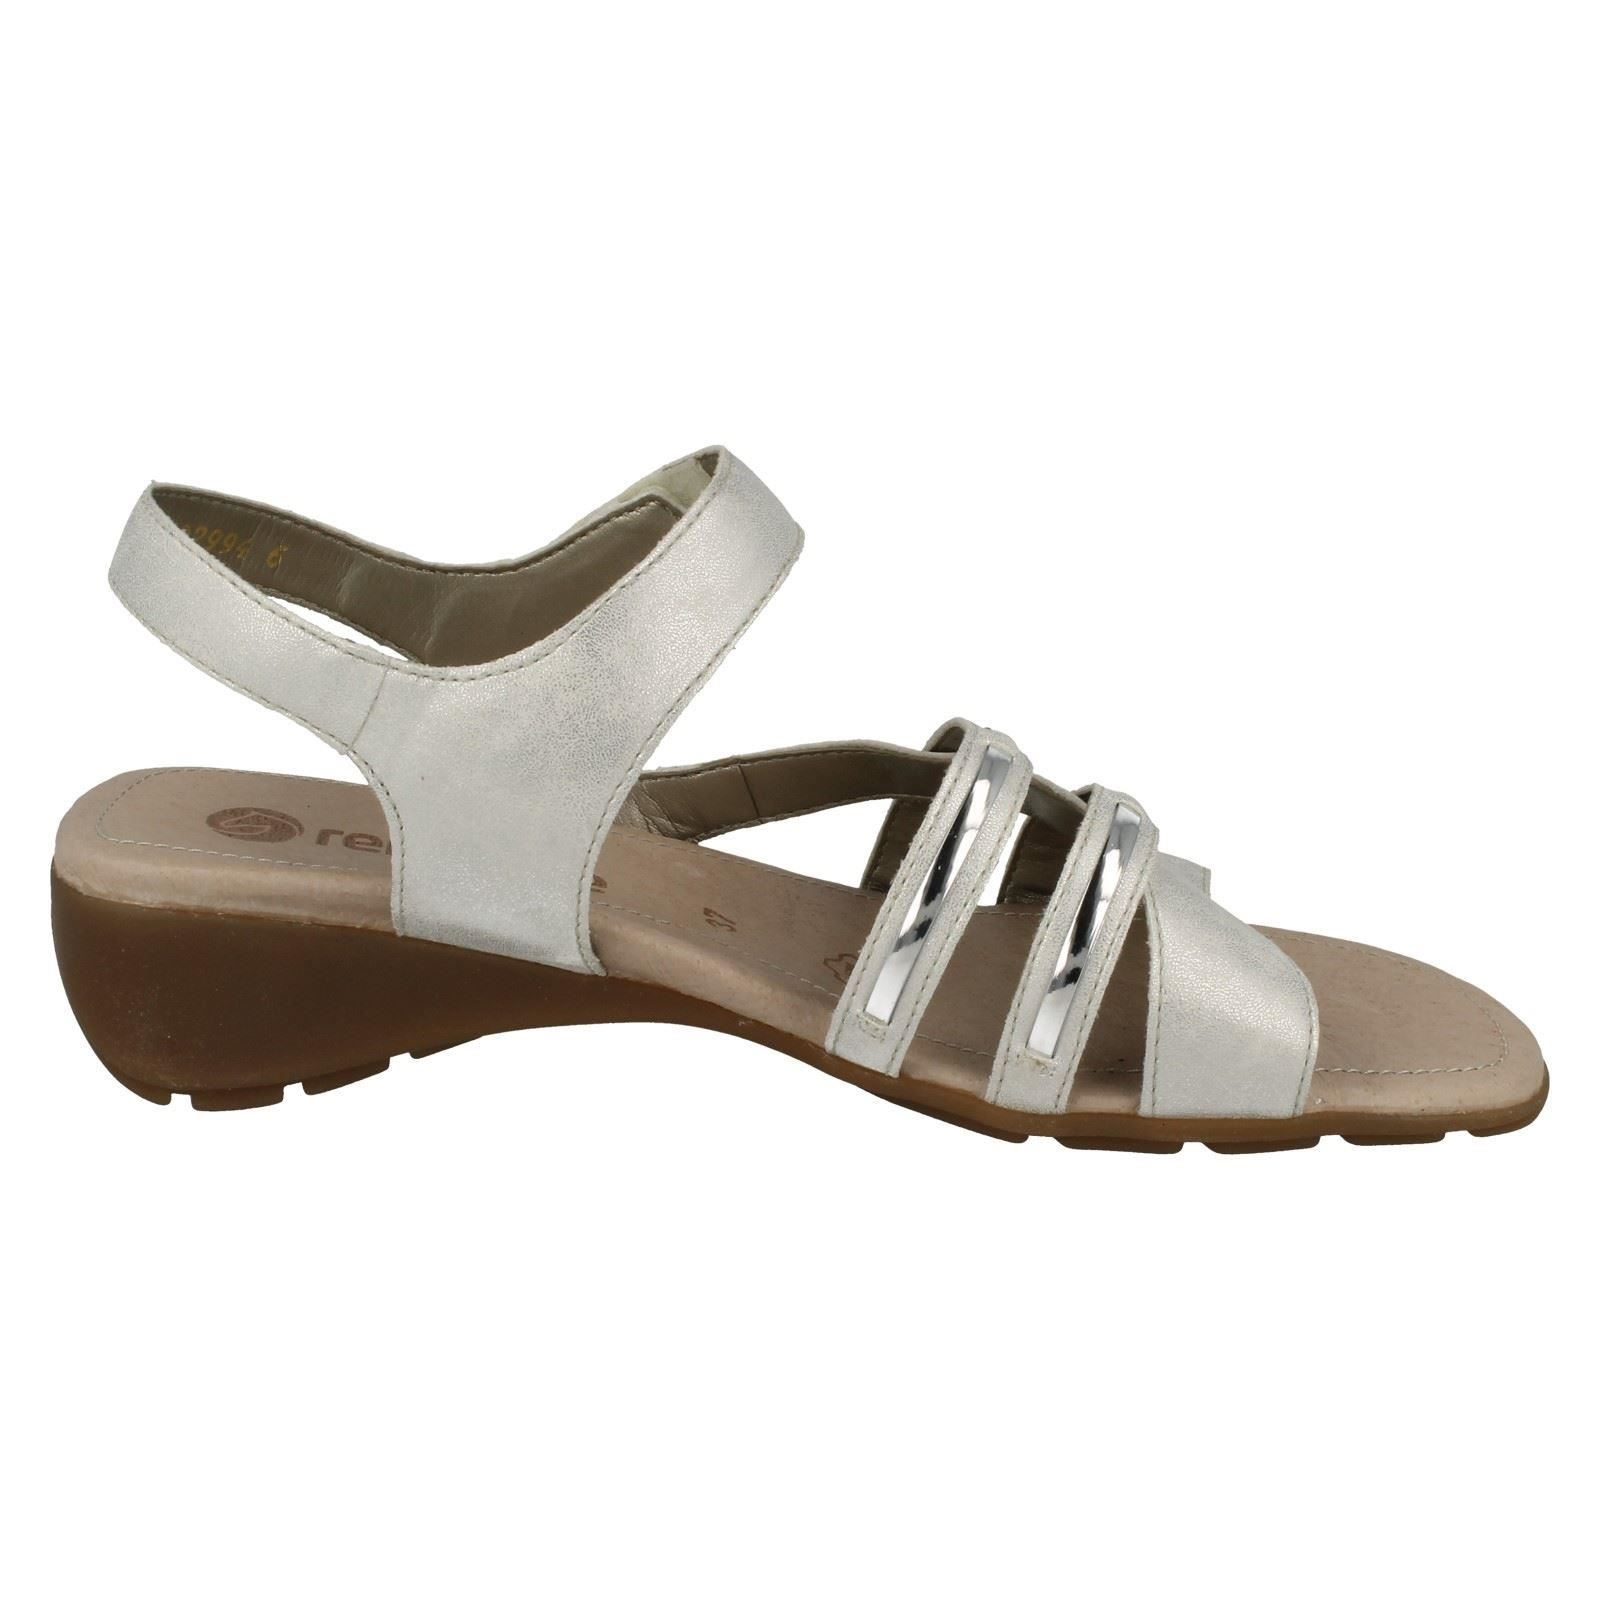 Ladies Sandals White Fashion Casual R5245 Remonte Baq7rwnB